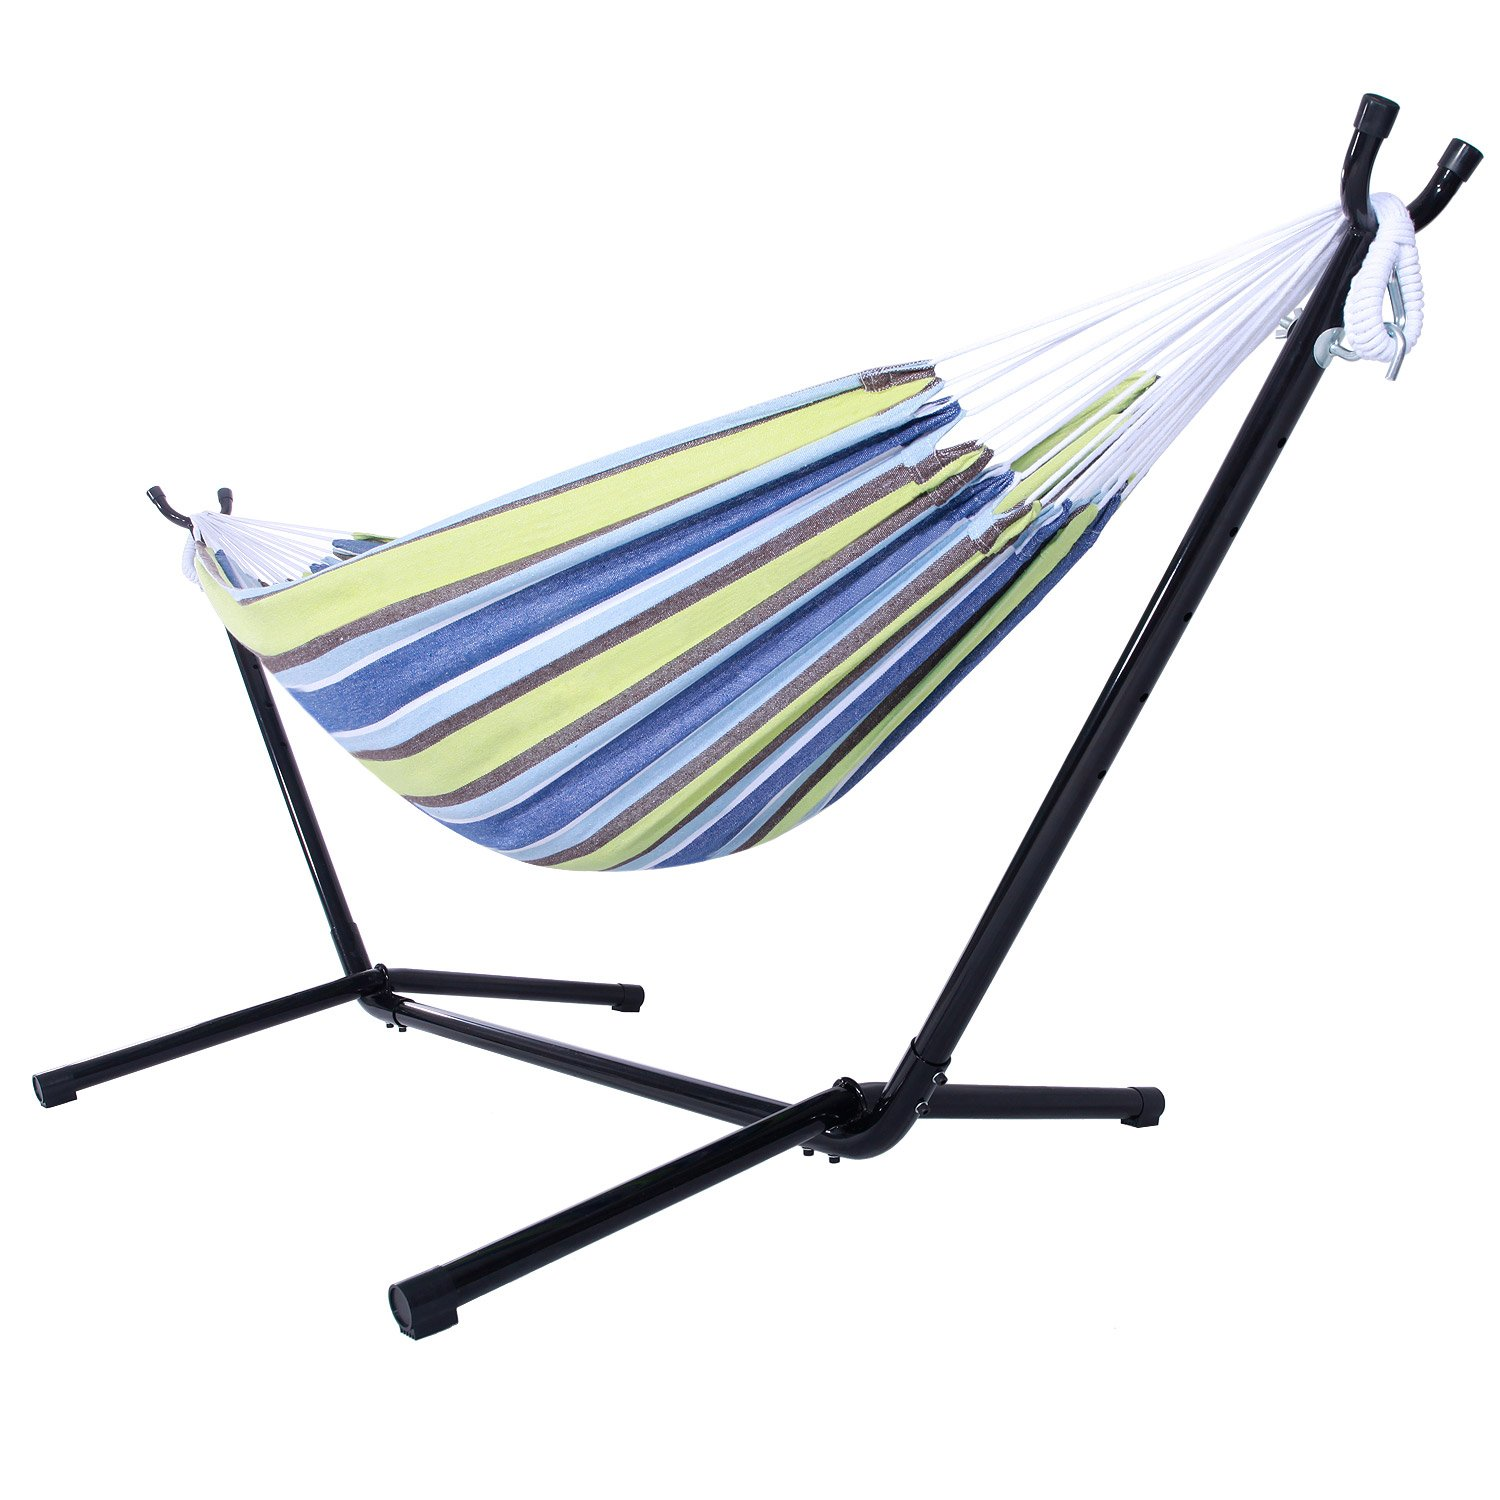 Z ZTDM Double Hammock with Space-Saving Steel Stand, Heavy Duty 2 Person Comfortable Portable Hammock Includes Carrying Case, 440 lbs Capacity for Indoor/Outdoor/Porch/Yard/Patio (Green Stripe)